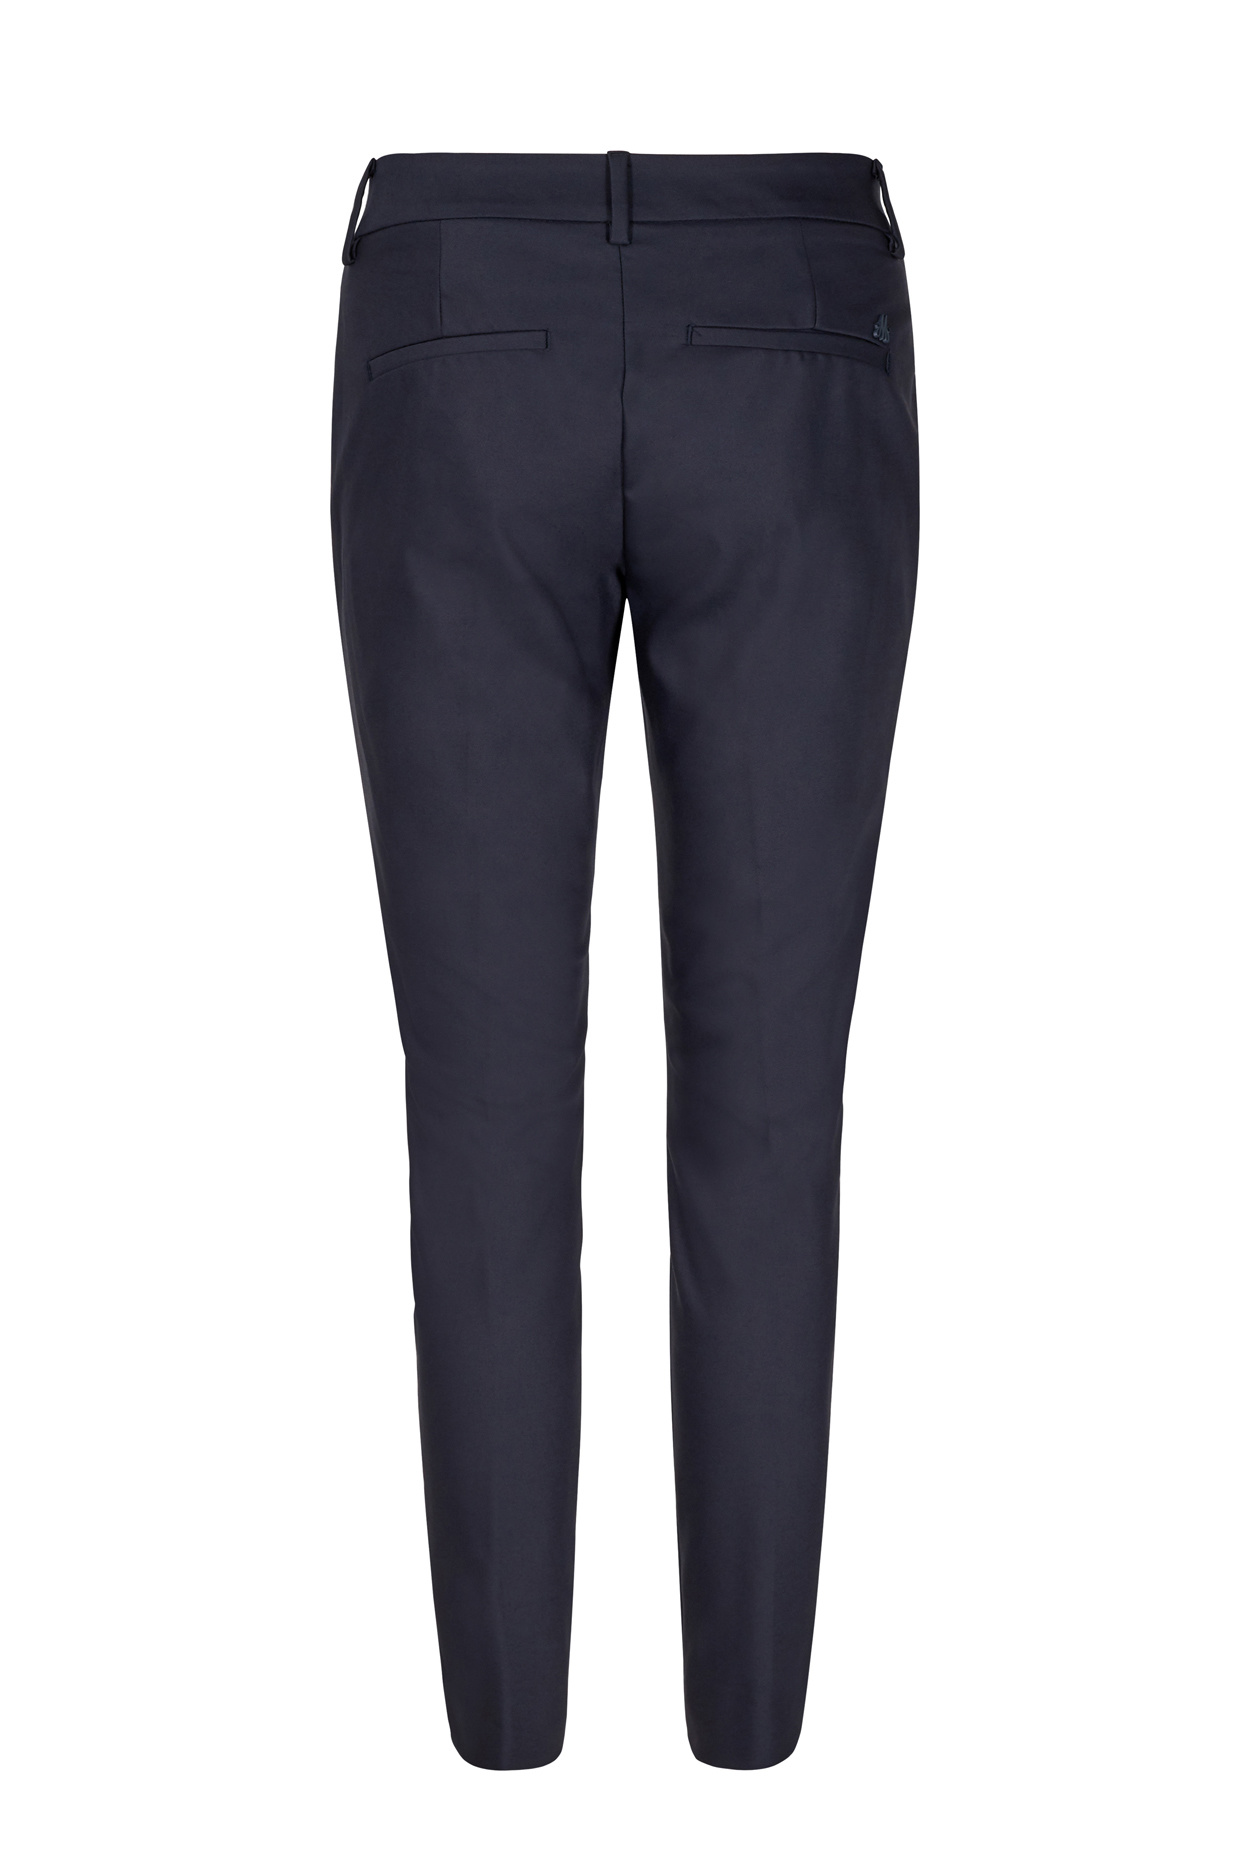 Abbey Night Pant Sustainable - Navy-5